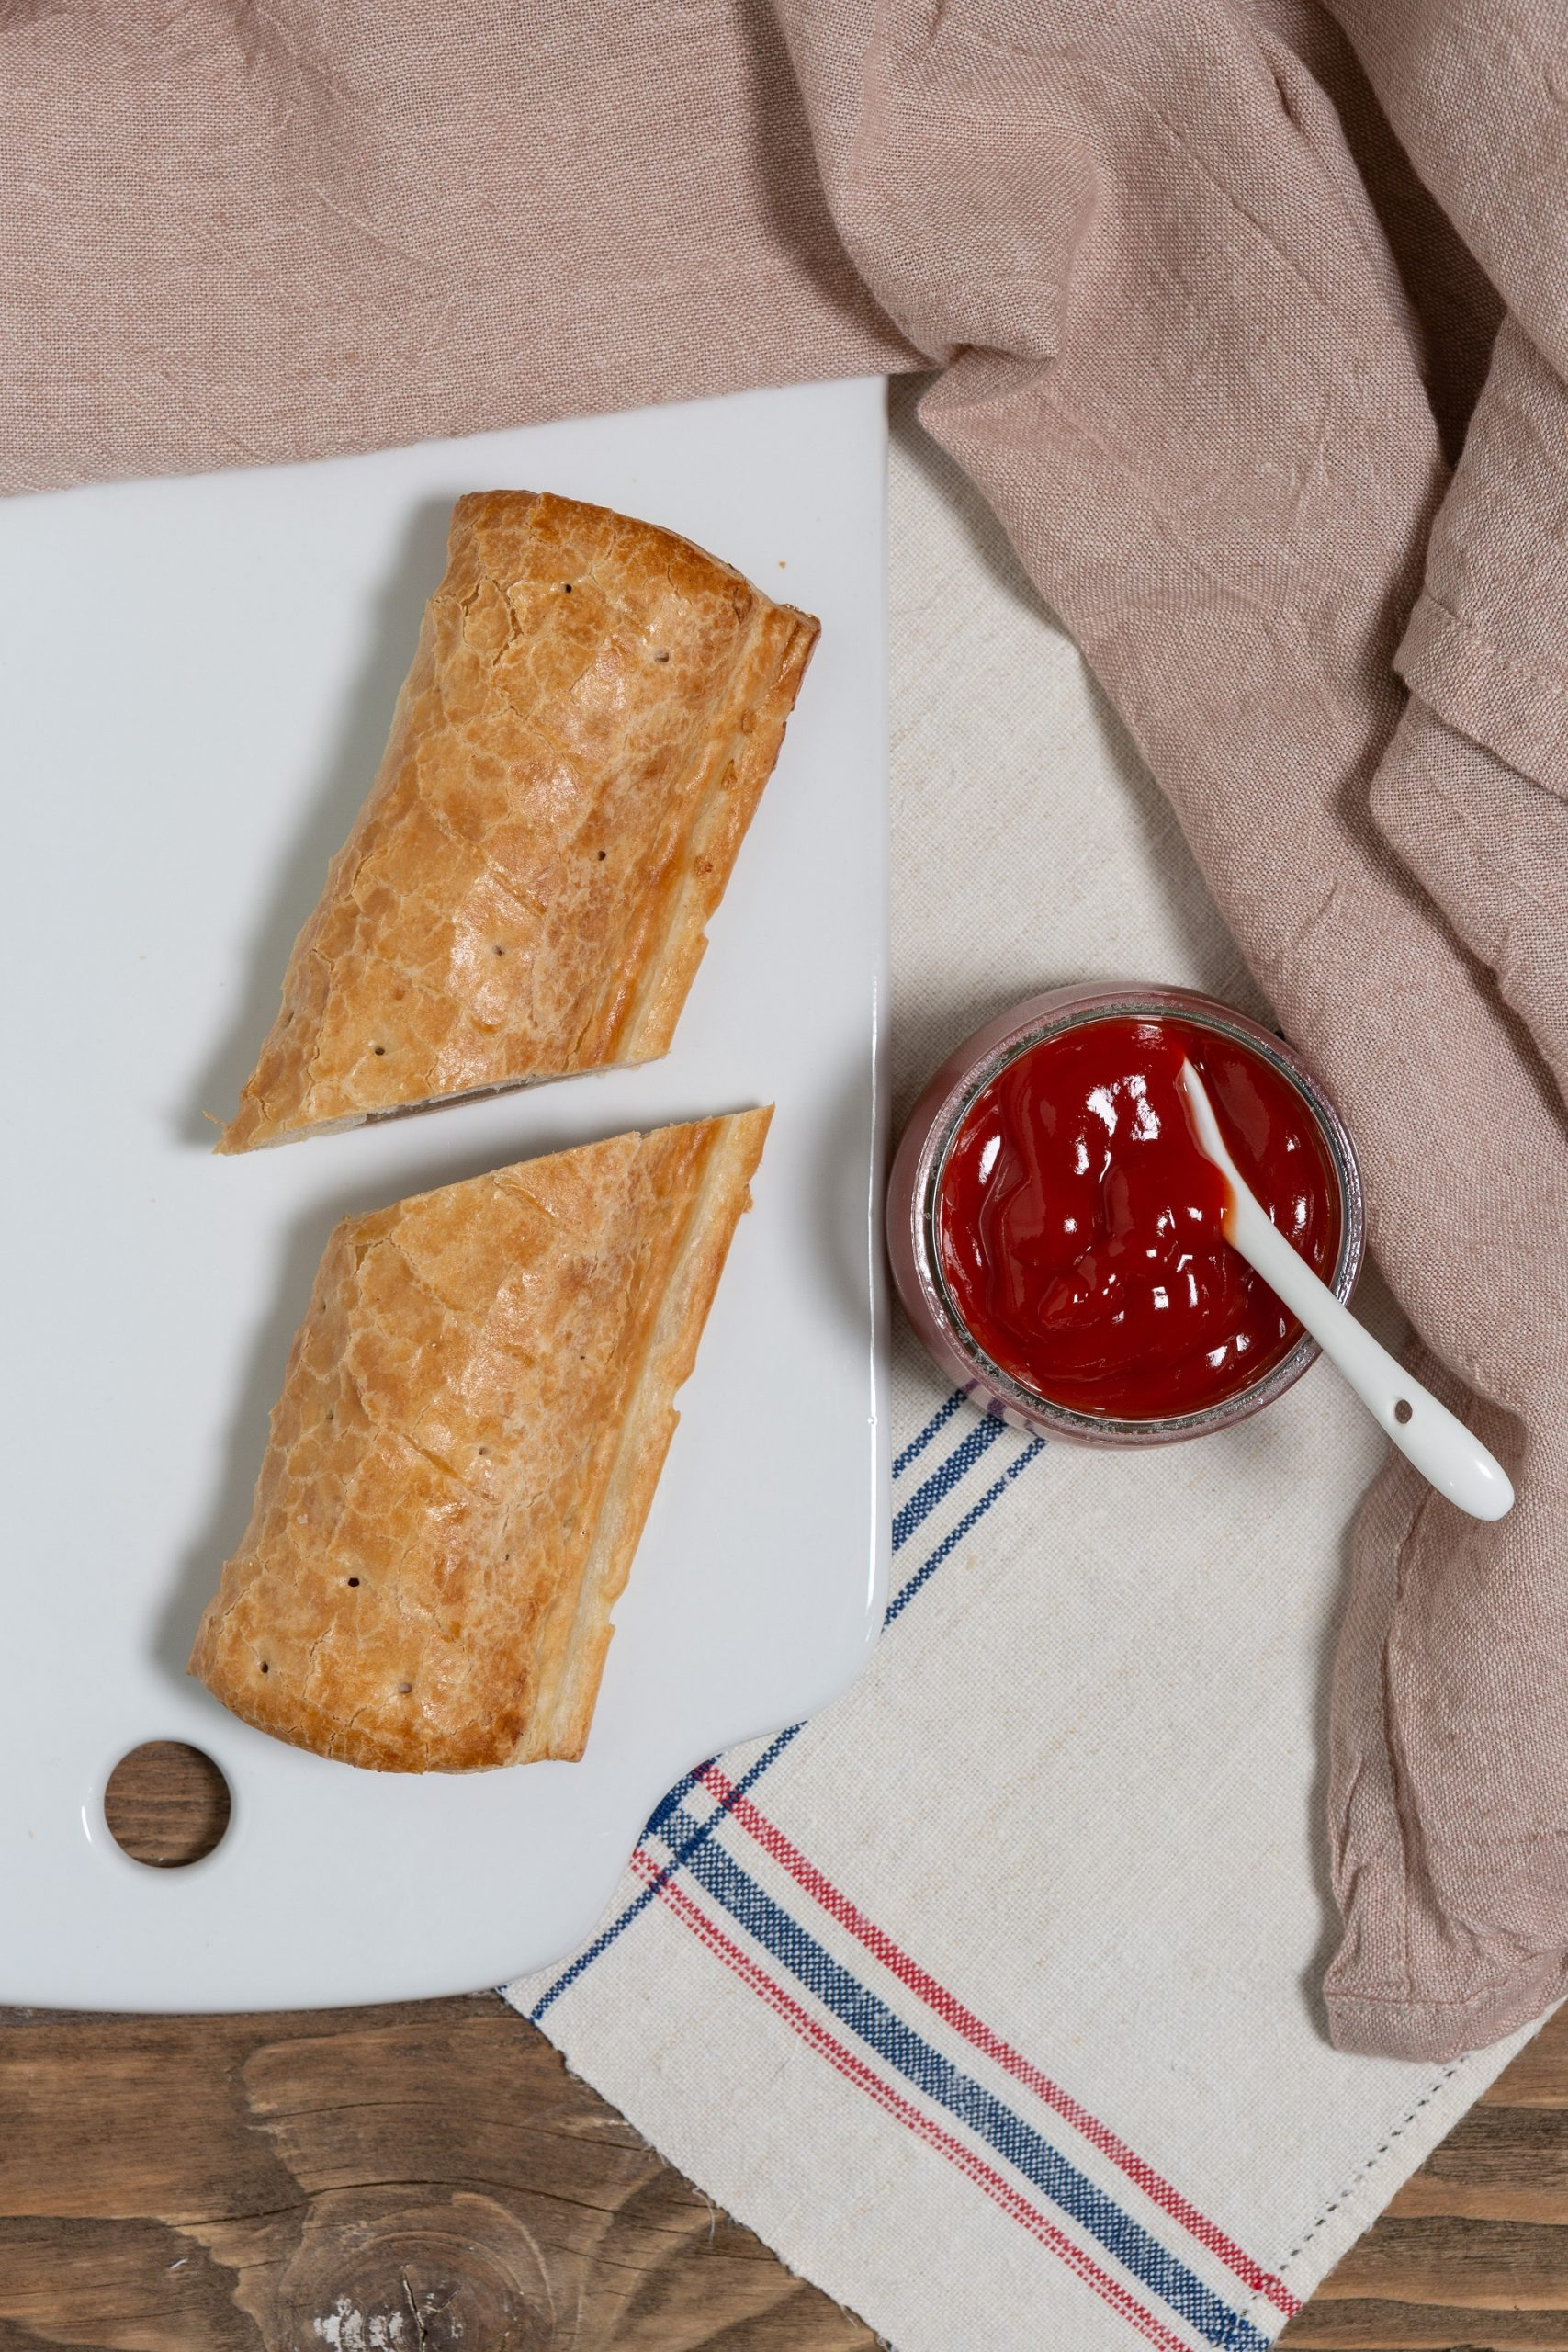 Wall's Pastry_Healthy tomato ketchup with Vegan Jumbo Roll LR